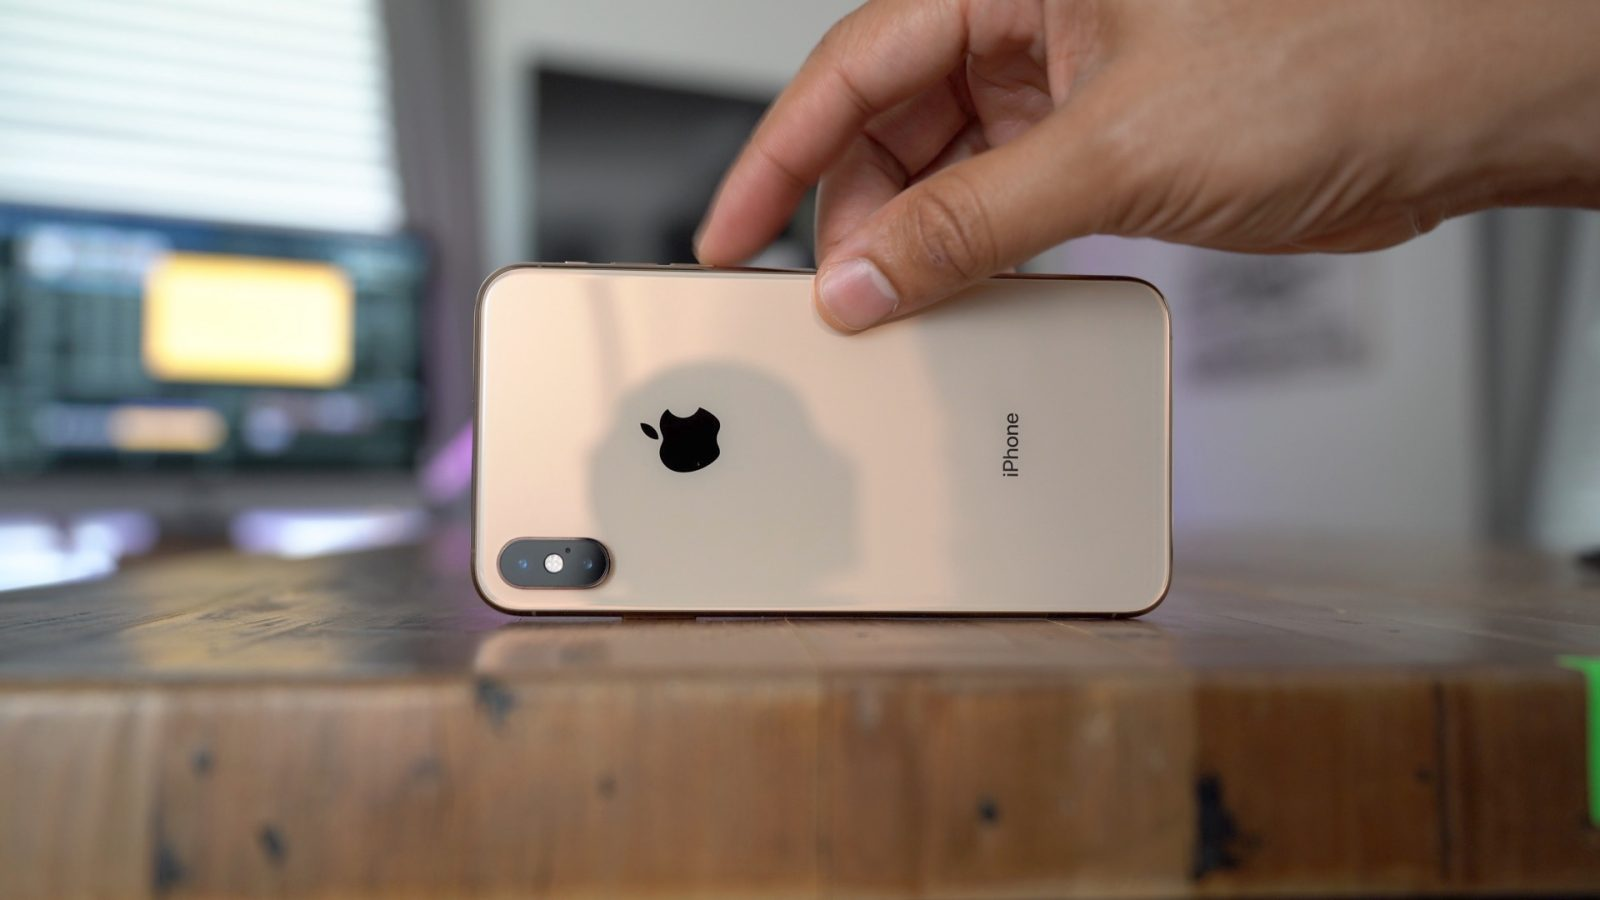 Iphone Xs Max Costs Apple 443 To Make As It Cuts Some 3d